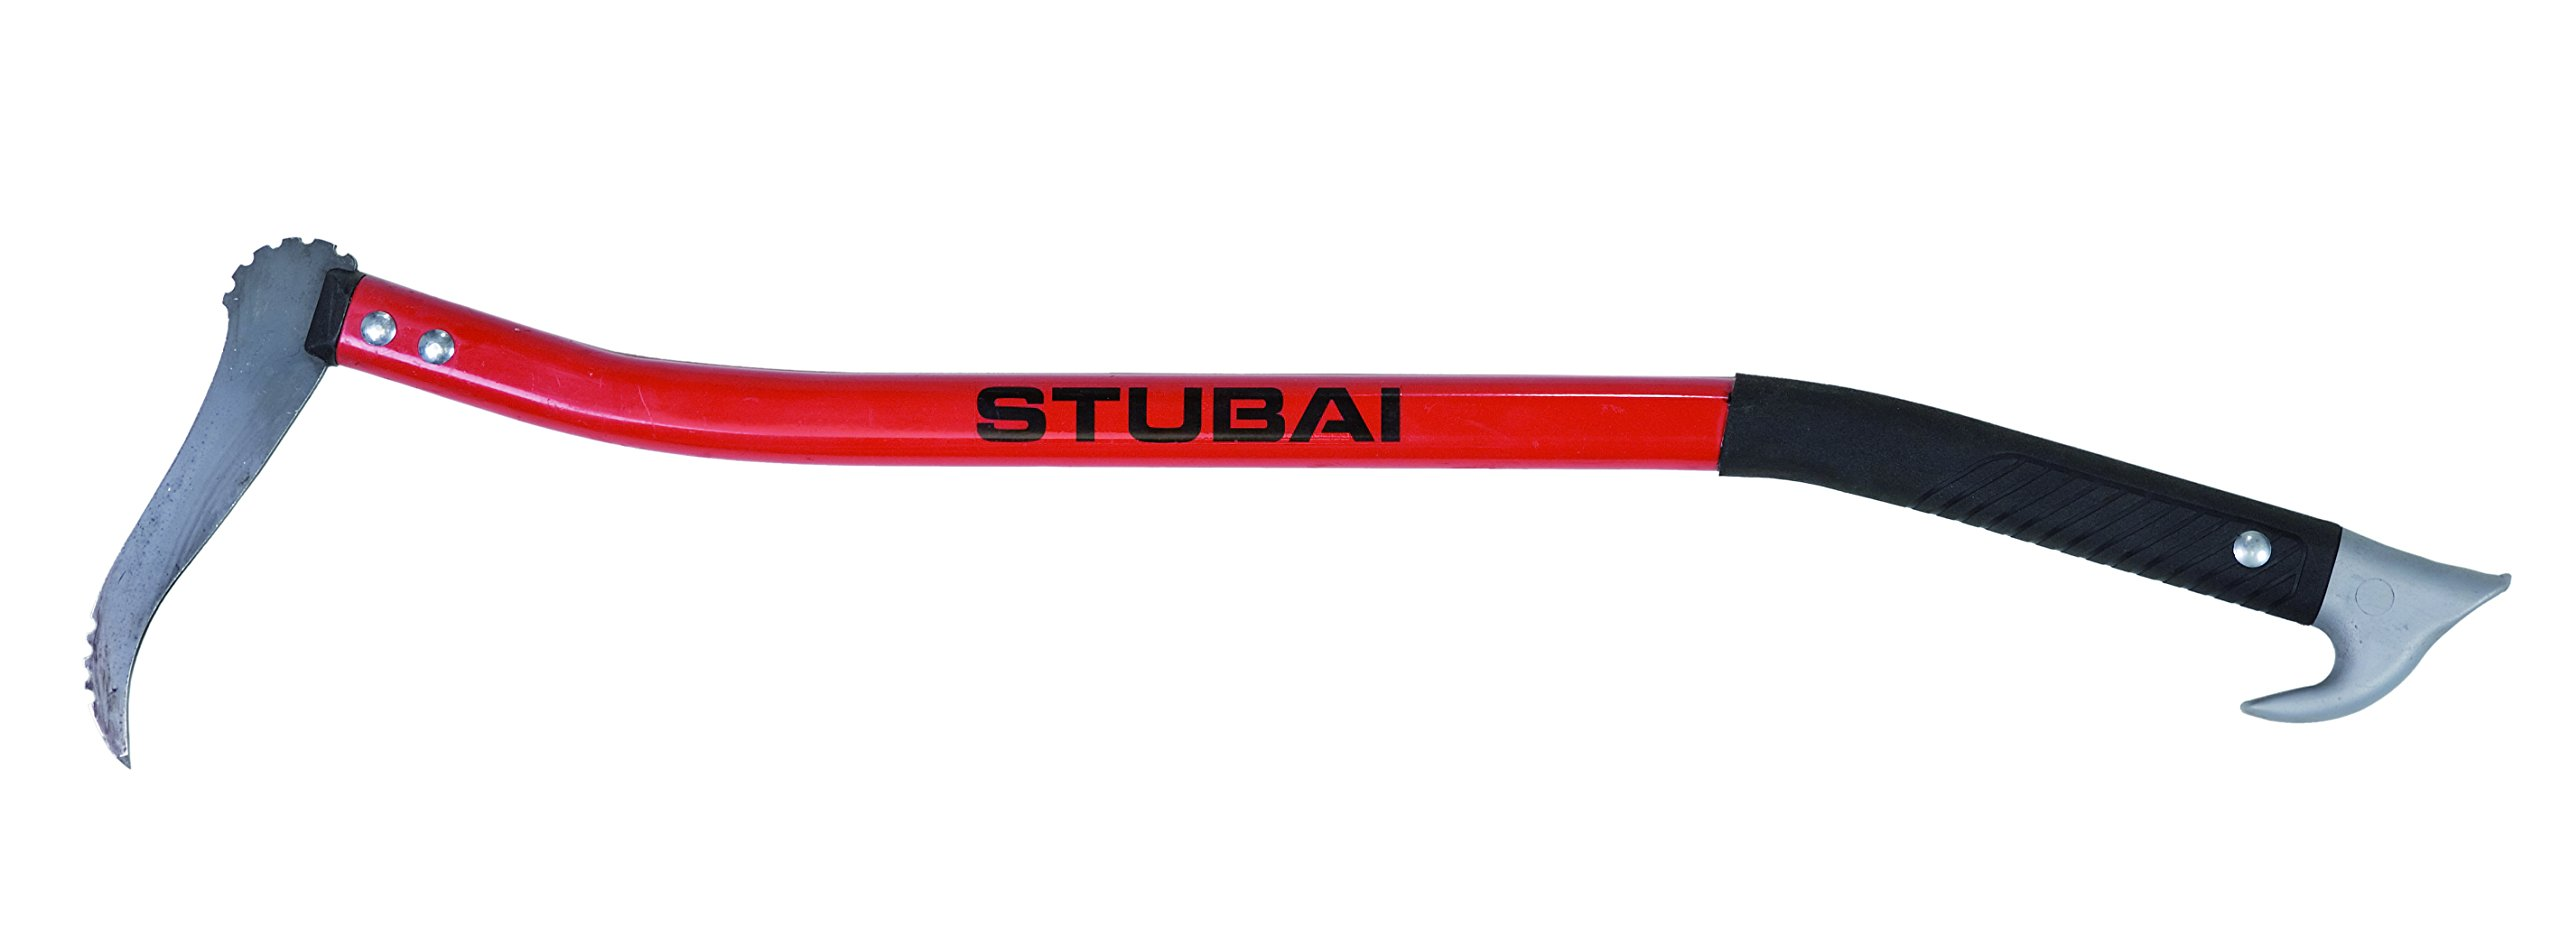 Stubai 674250 Hand lifting hook 500mm with aluminum handle ergonomic